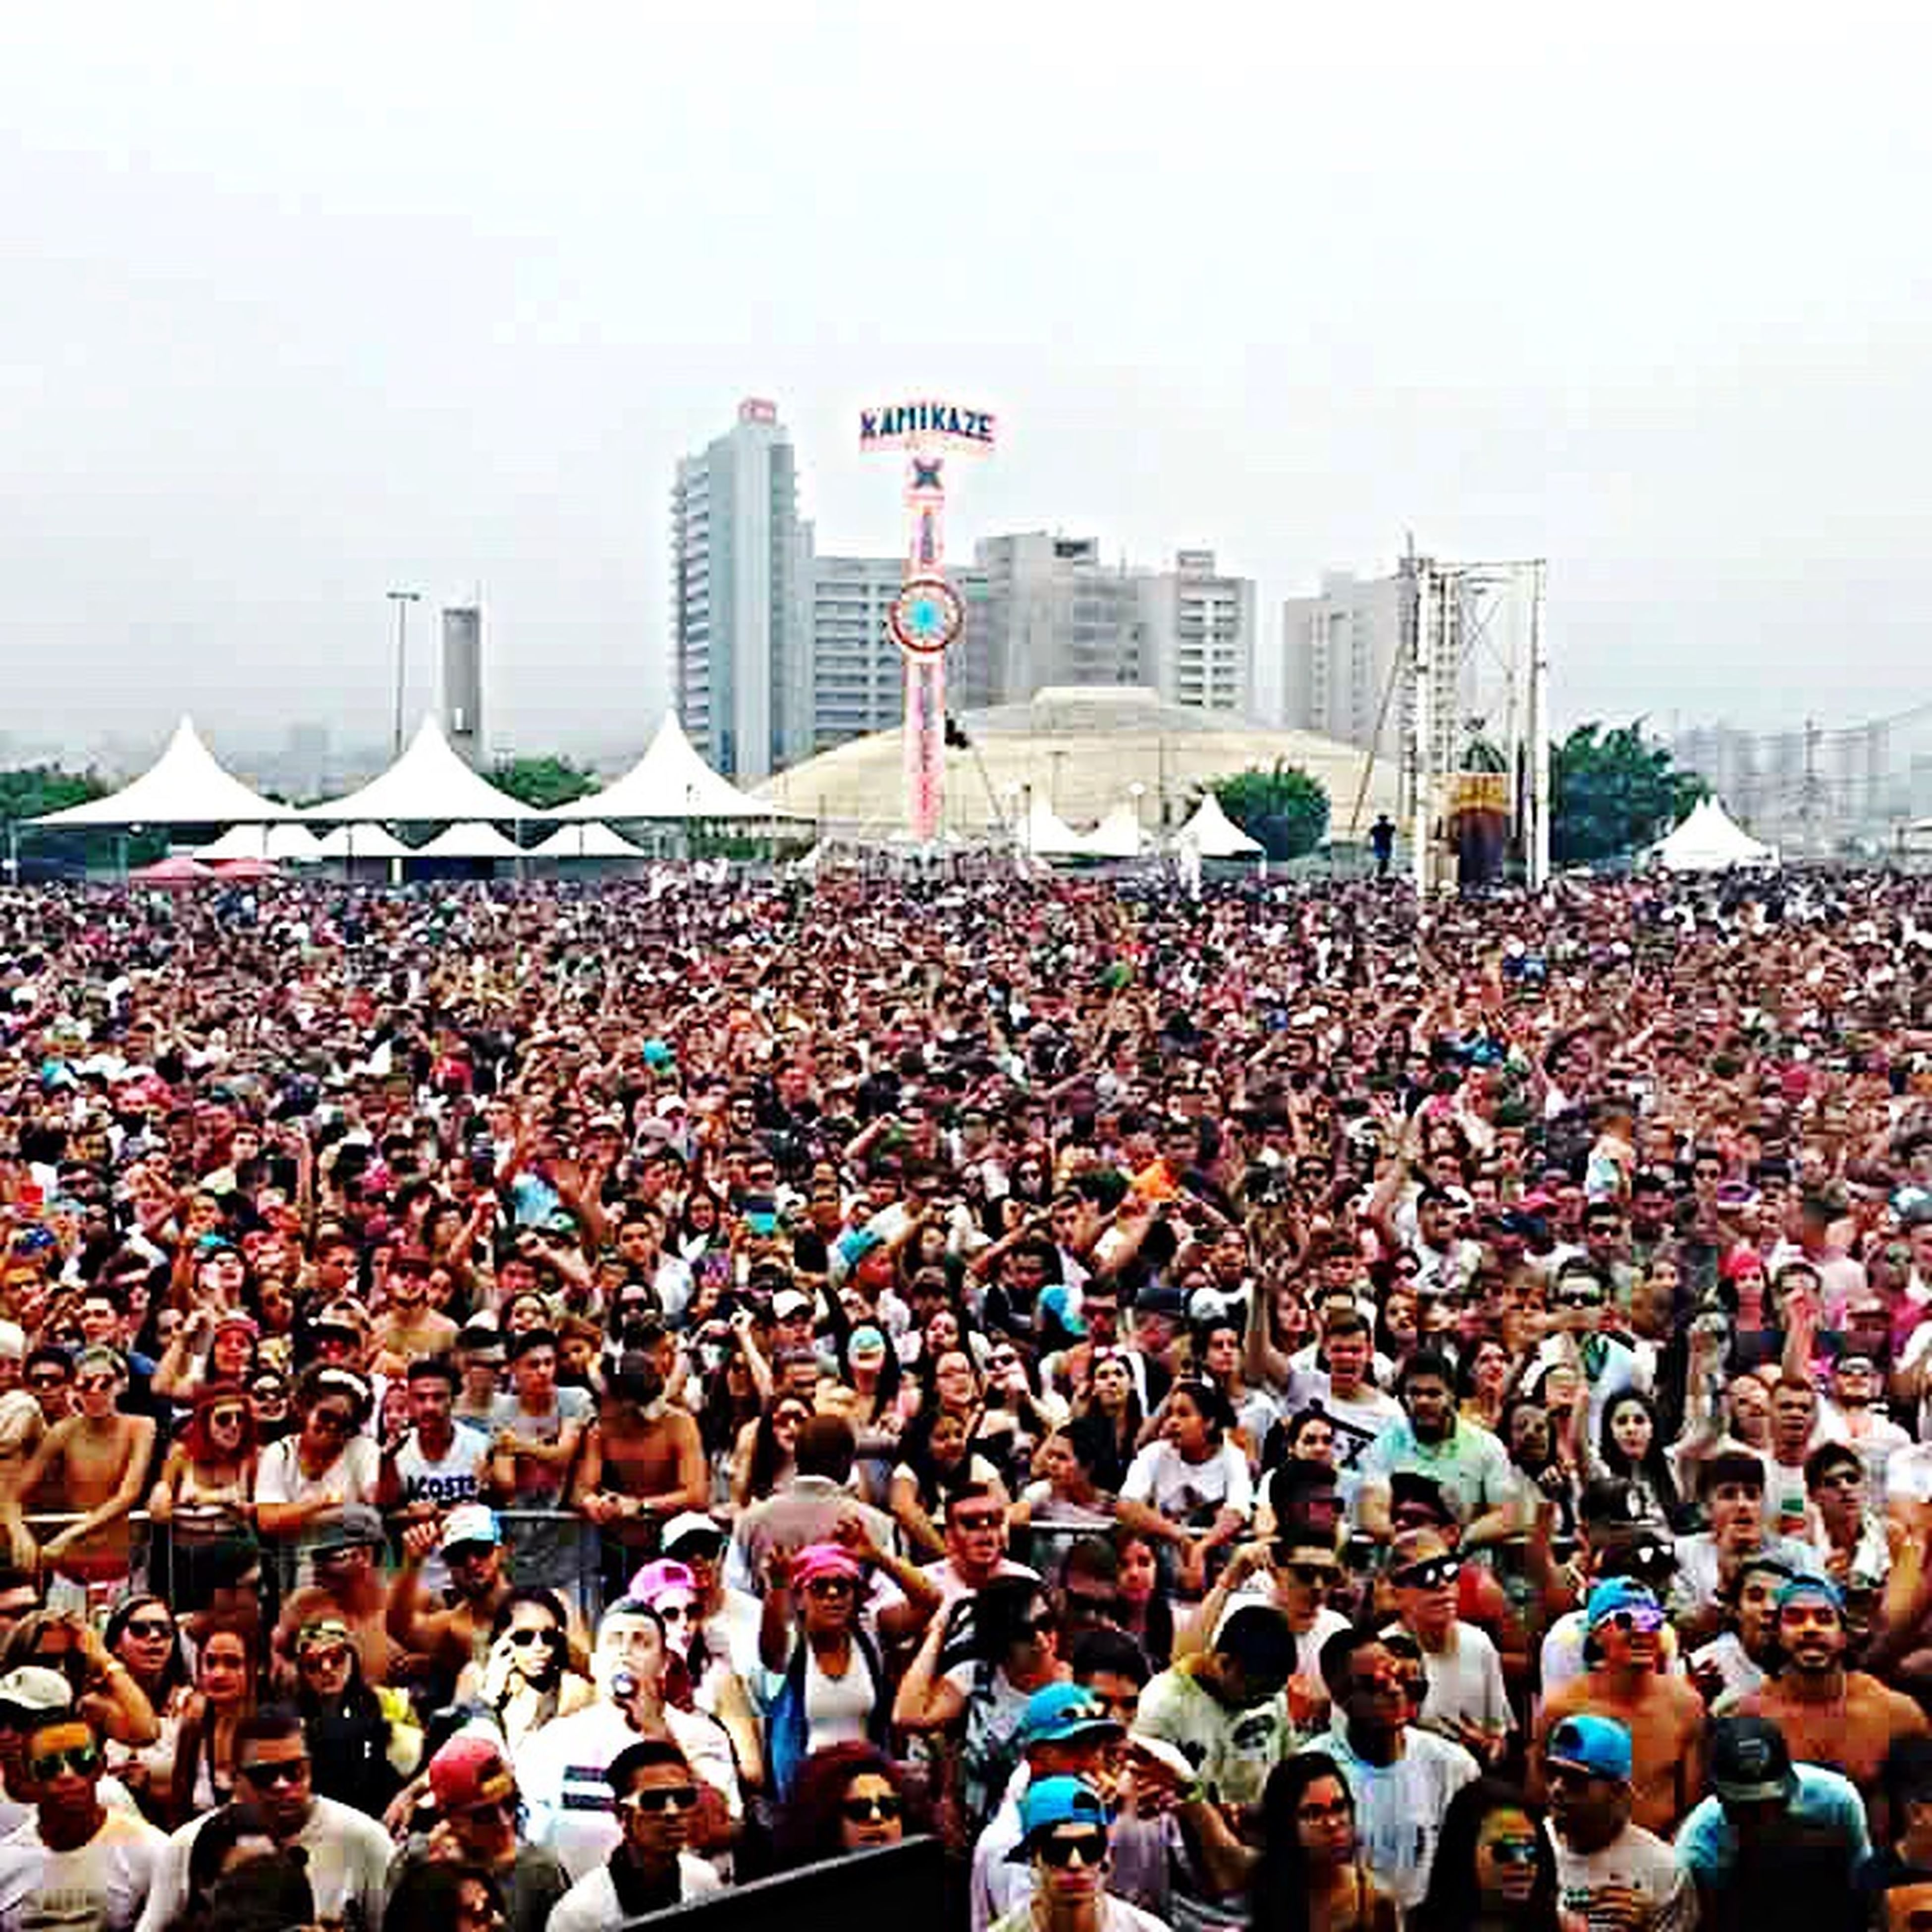 large group of people, city, crowd, building exterior, architecture, city life, men, built structure, togetherness, person, outdoors, tall - high, skyscraper, event, spectator, office building, performance, social gathering